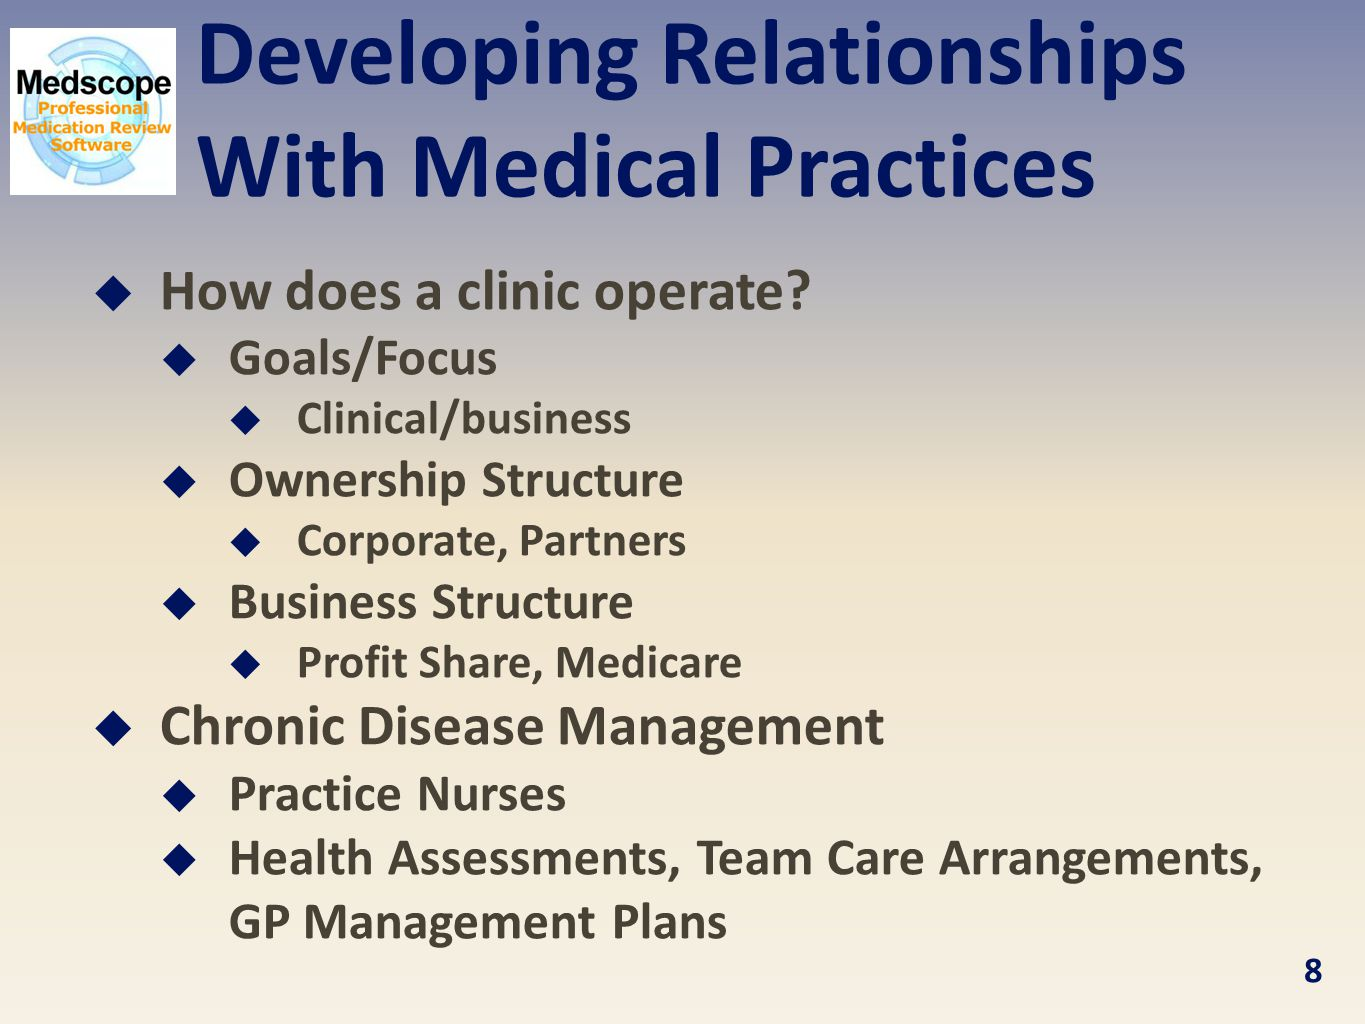 Developing Relationships With Medical Practices